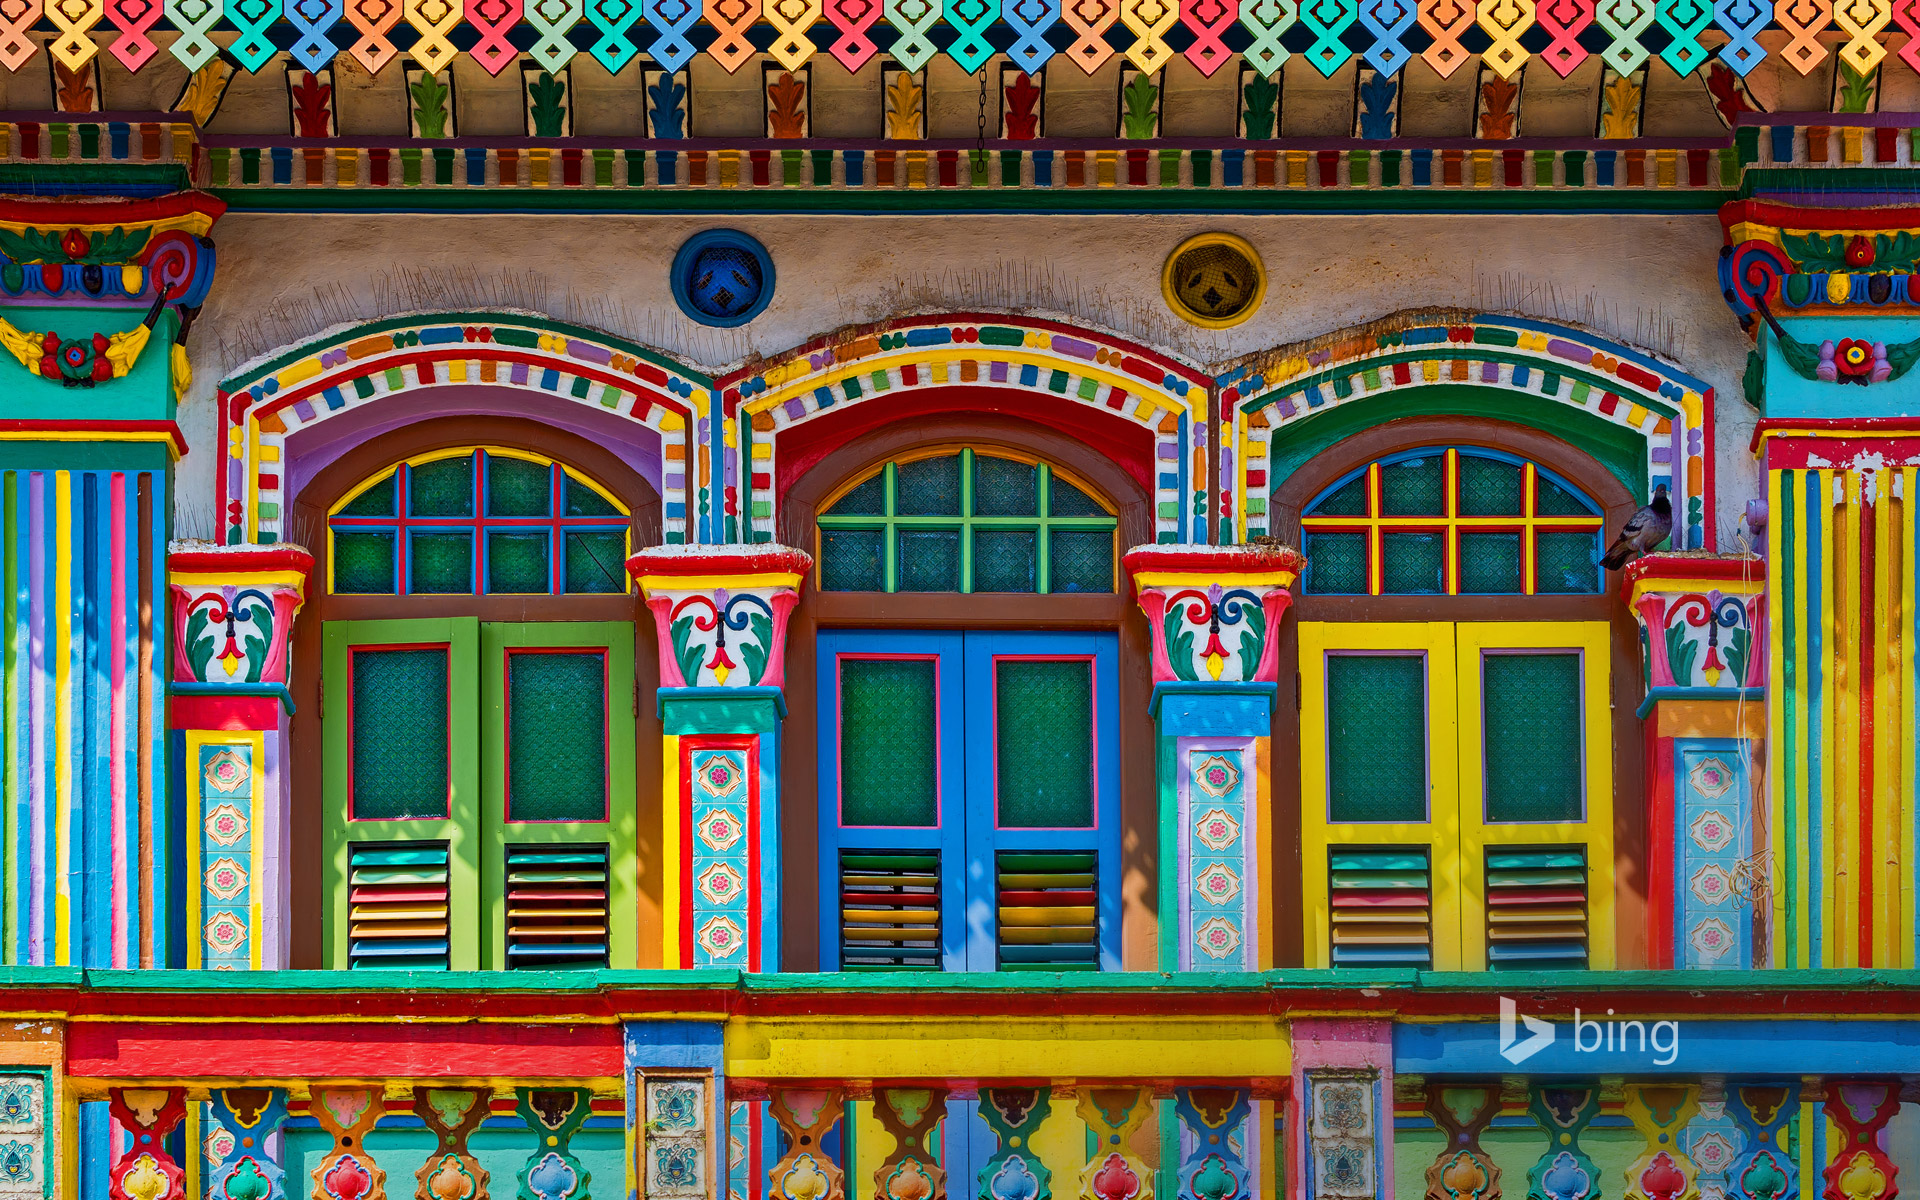 Colourful façade of a building in Little India, Singapore